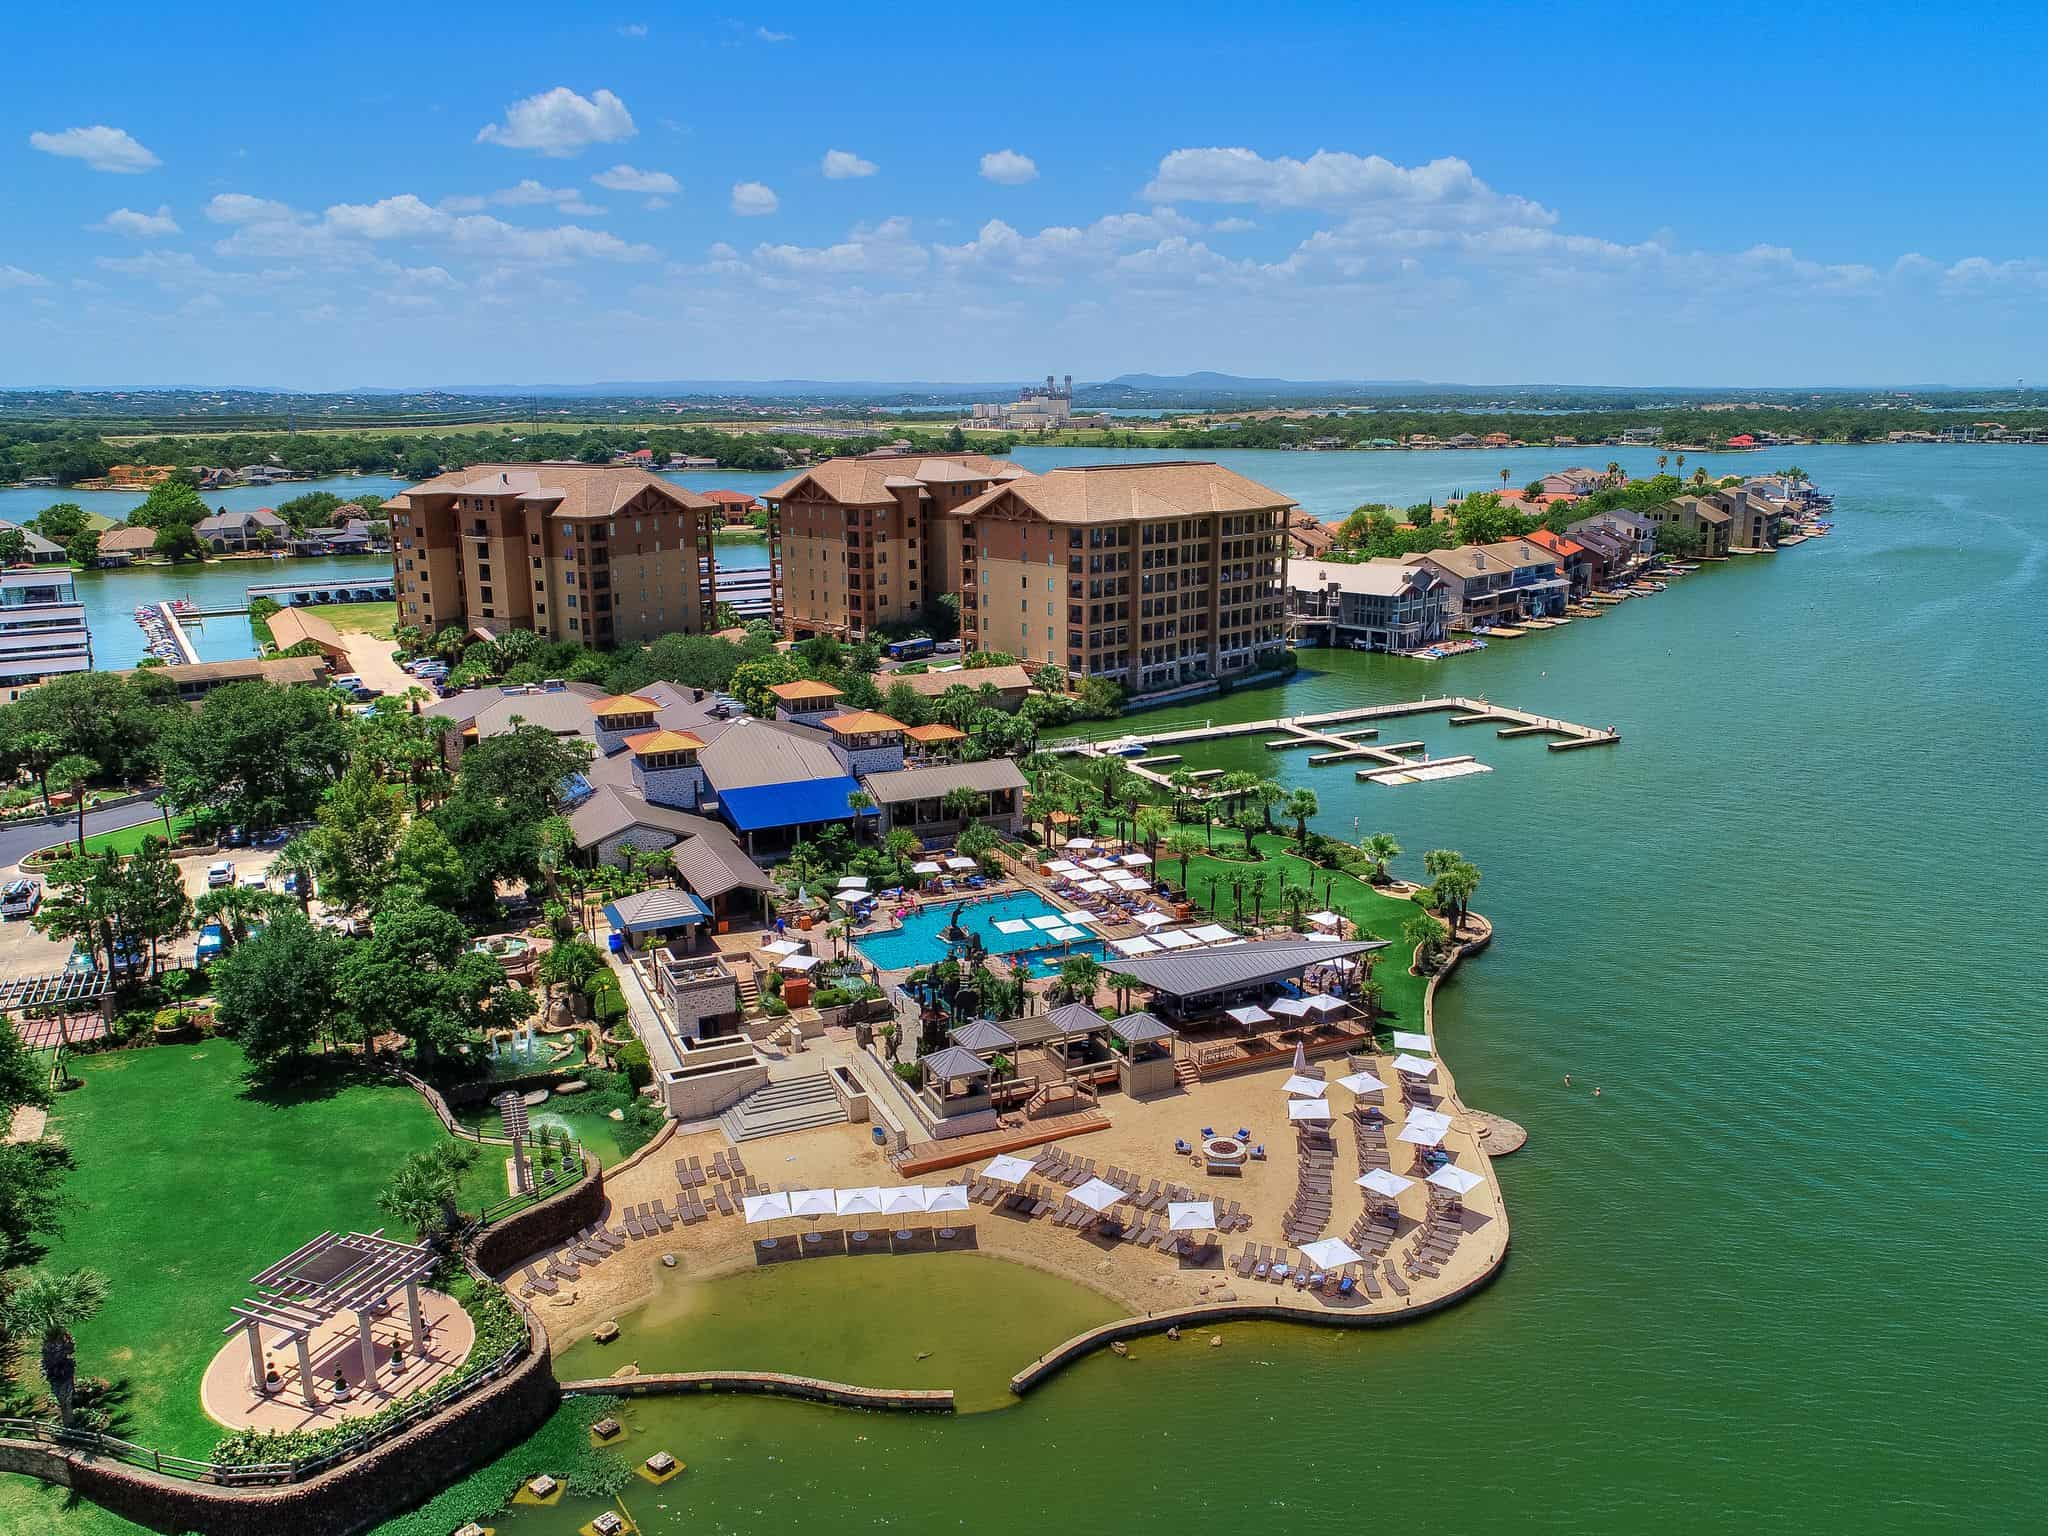 Arial View of Horseshoe Bay Resort